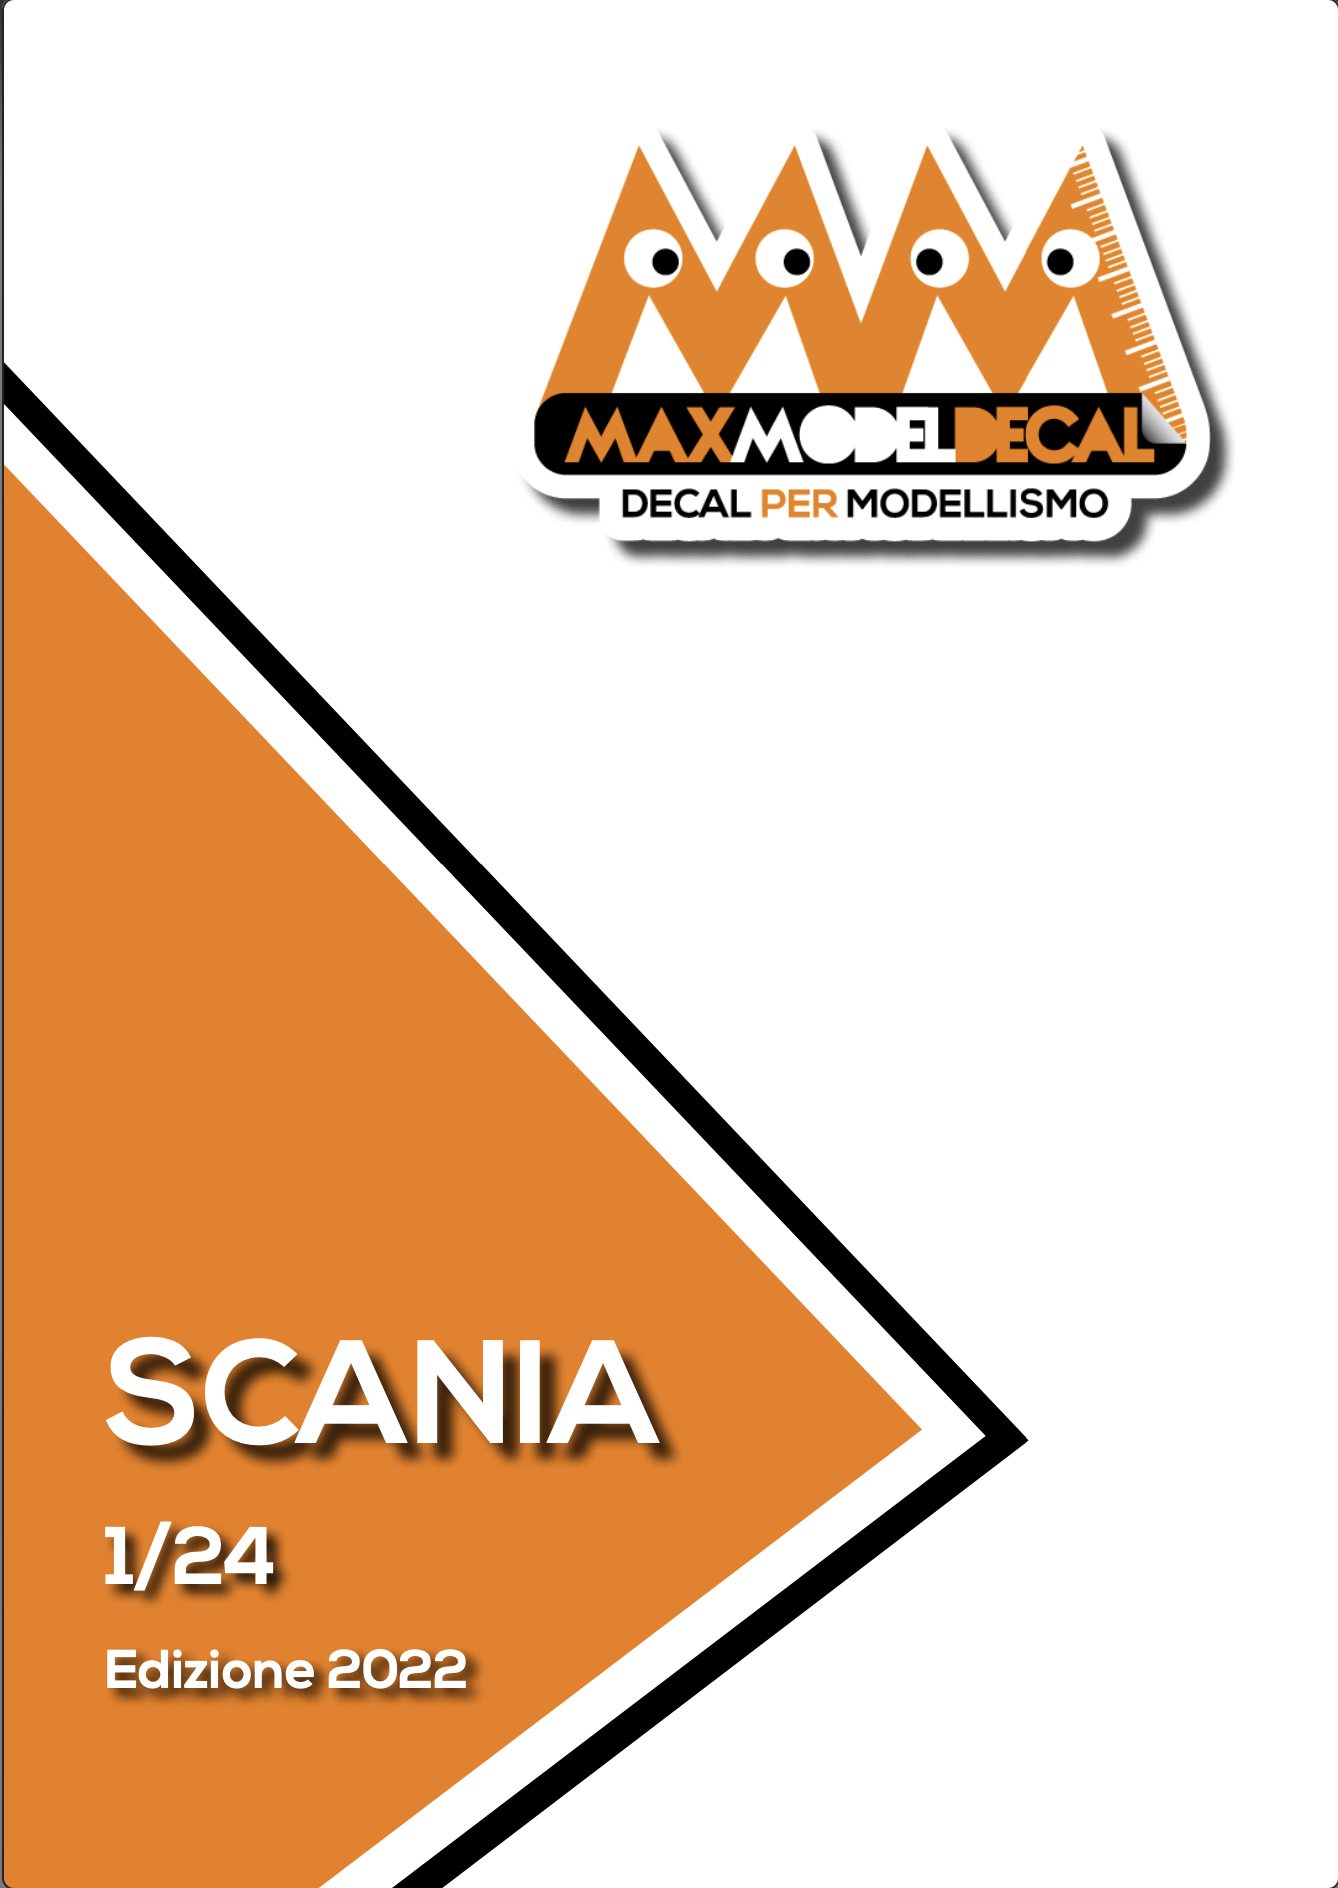 Scania_24_2021.png